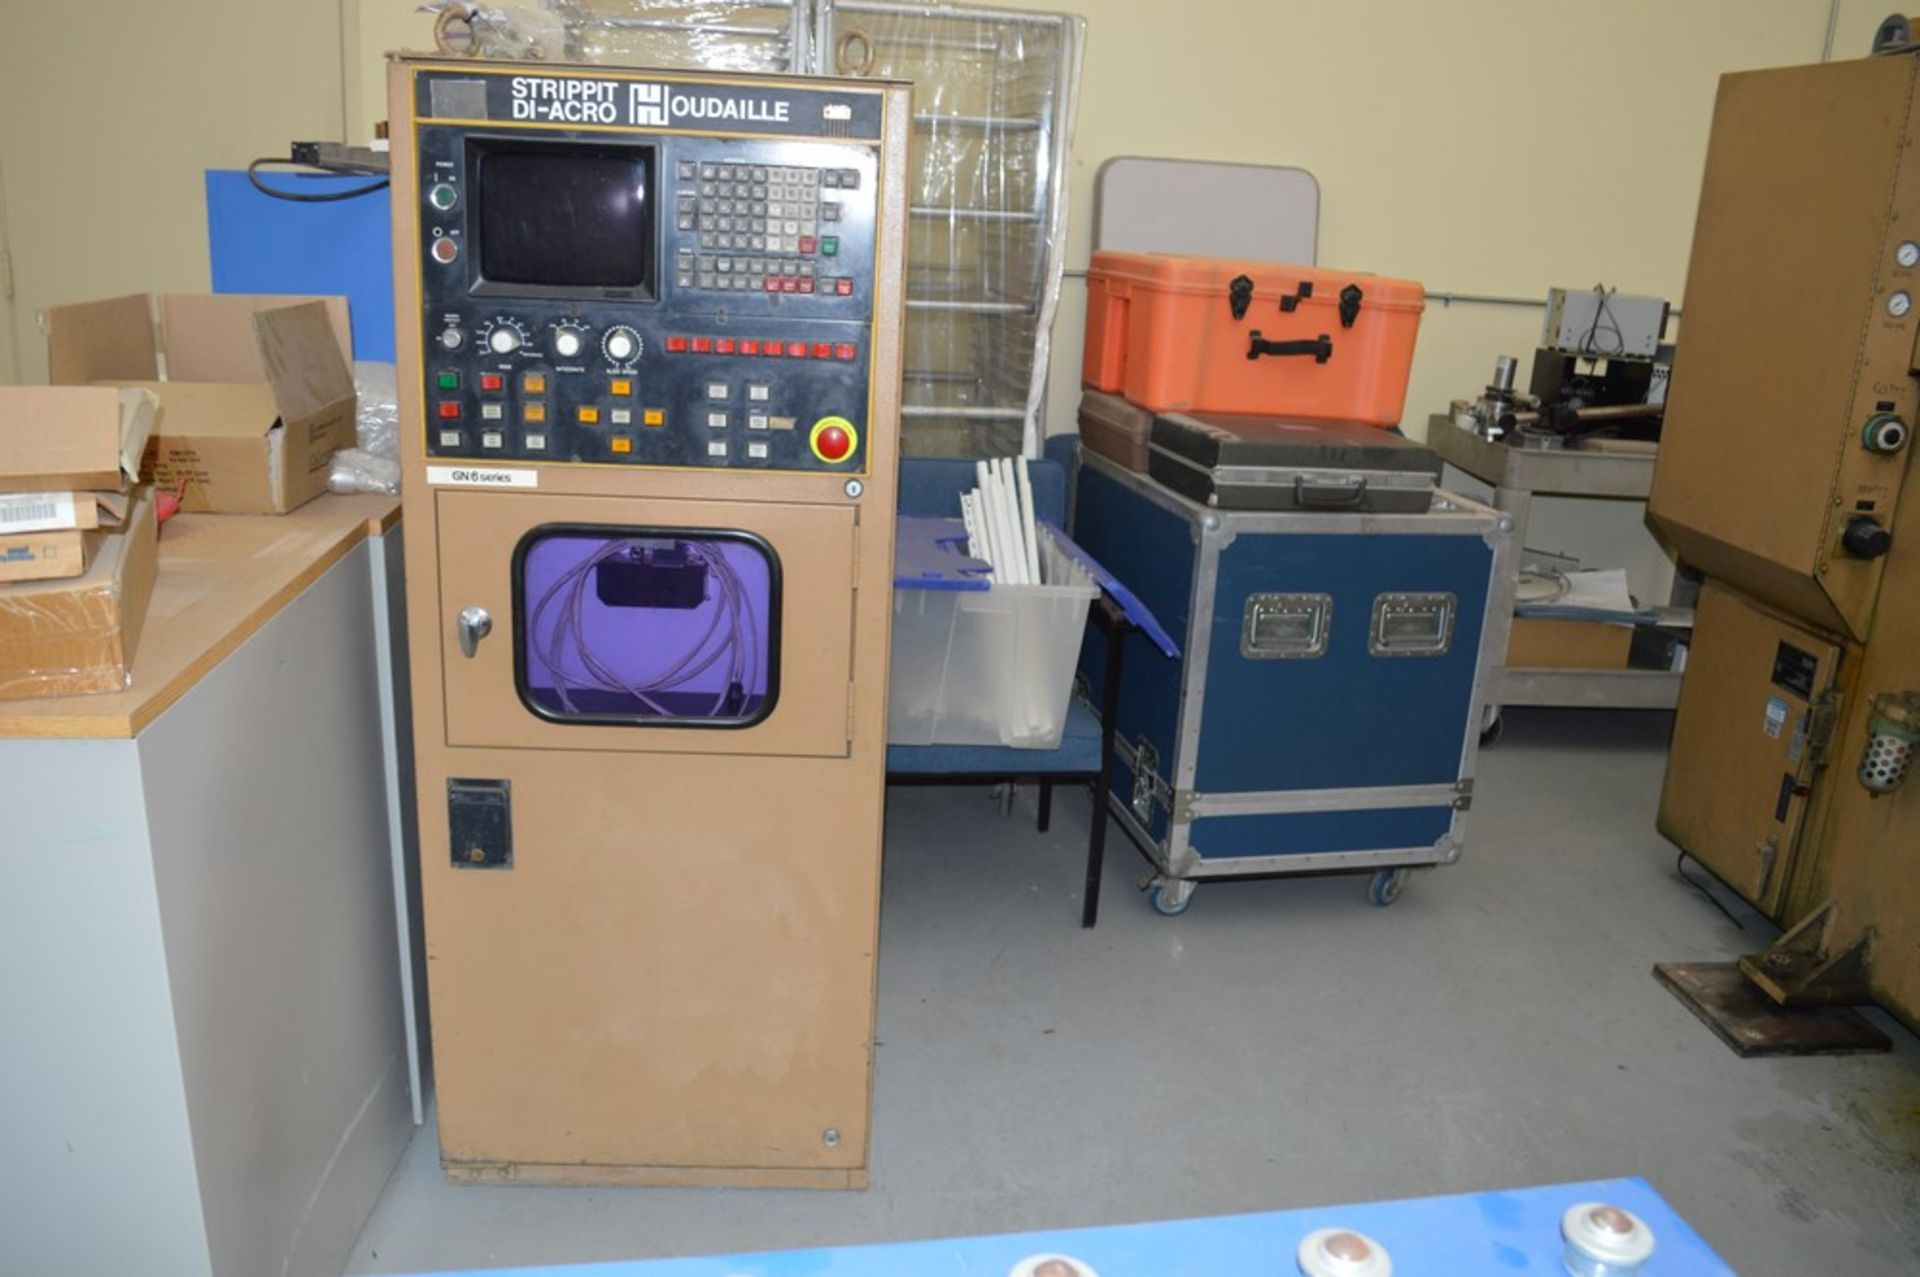 1985 Del Arco Strippit 1000 lbs punch, with auxilliary transfer table, 20 stations, blue 4 leg - Image 14 of 15